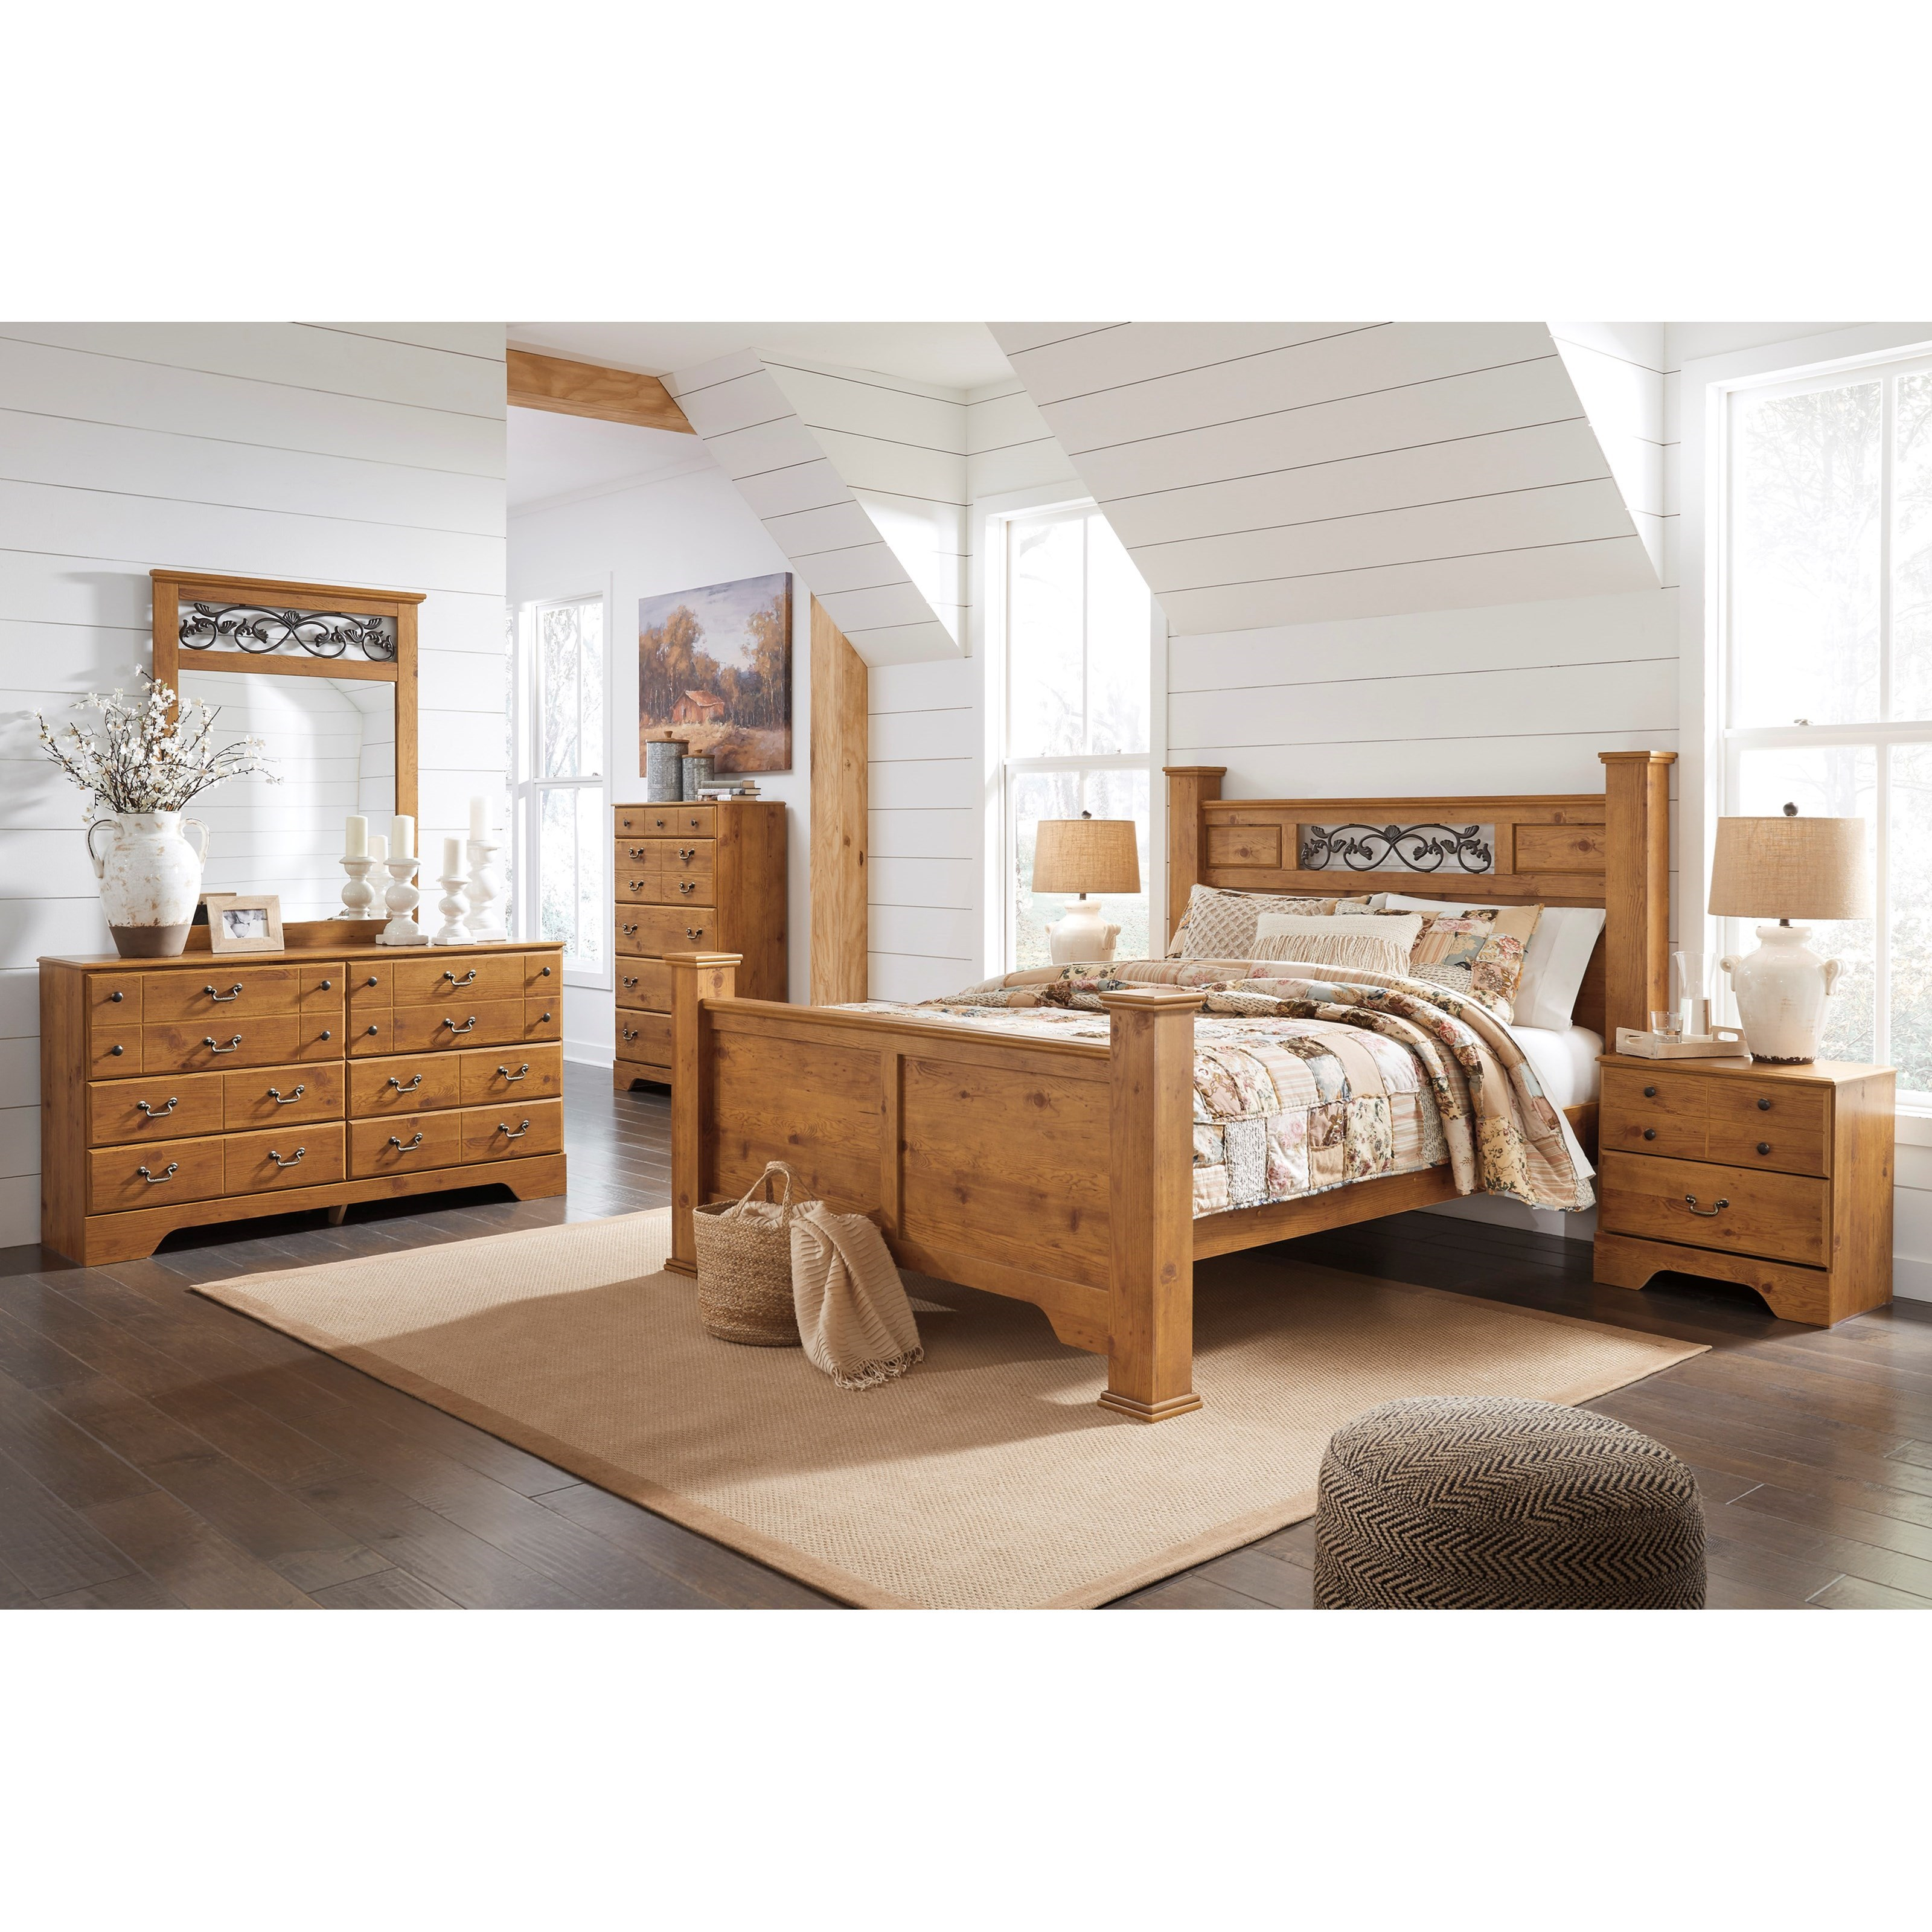 Bittersweet Queen Bedroom Group by Signature Design by Ashley at Zak's Warehouse Clearance Center